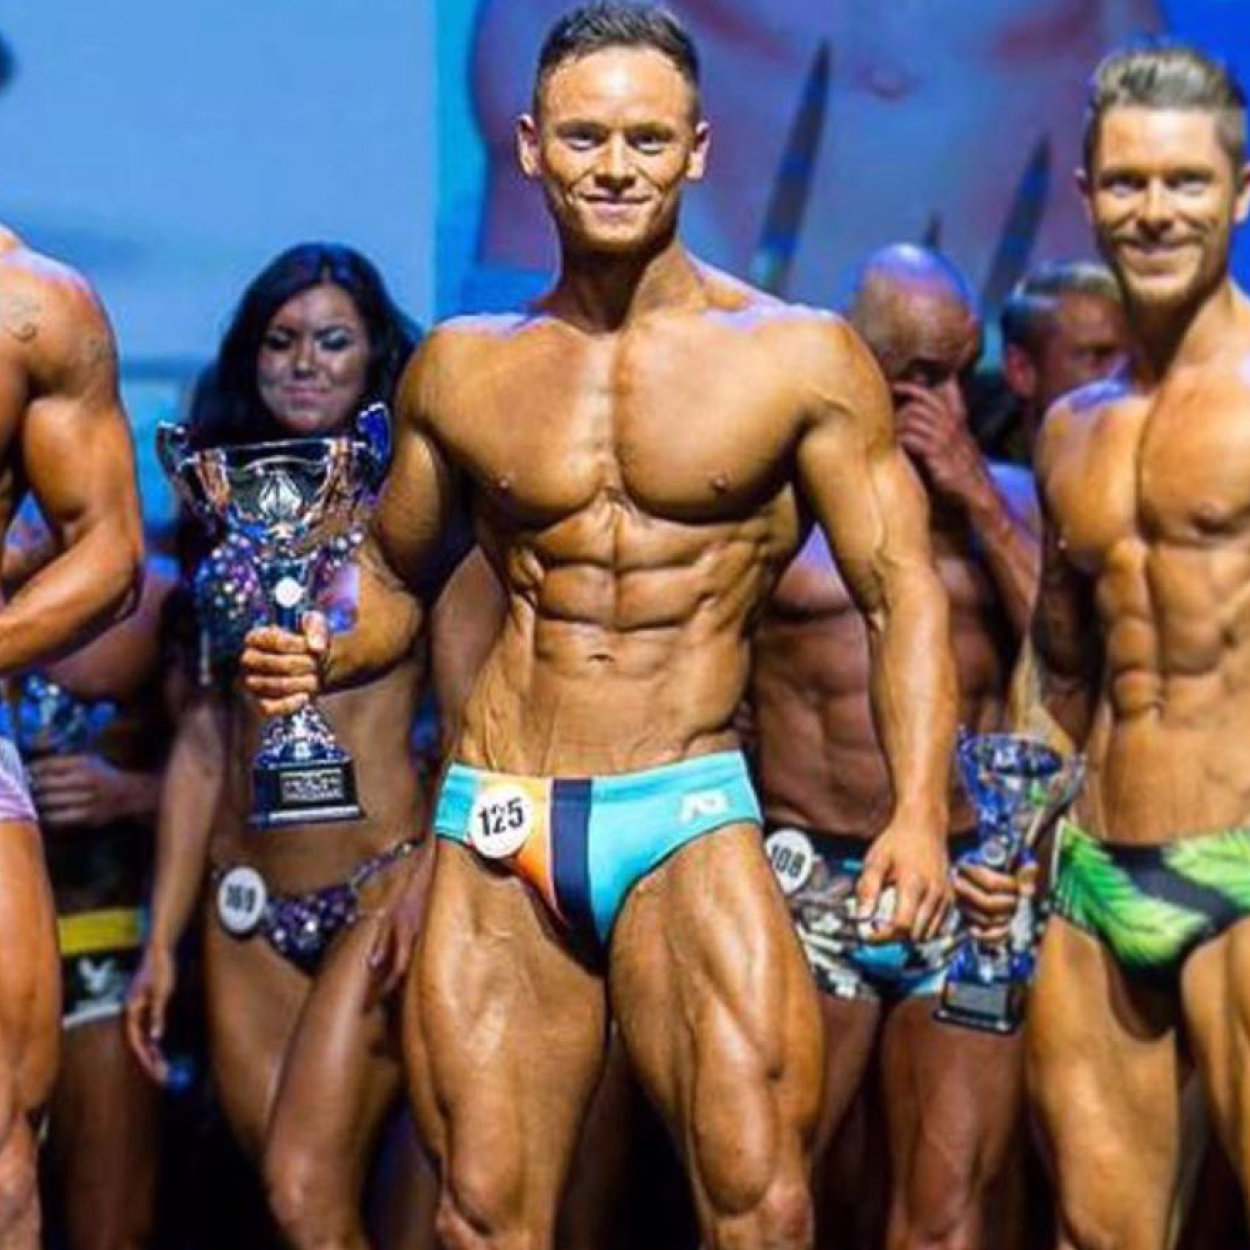 """ALEX DUFFY   """"What a year it's been! Placed 1st at Miami Pro, 2nd at Pure Elite Comp in April then placing 2nd at Pure Elite Comp Worlds at the O2 Pro category and Top 10 at WBFF this week.  I couldn't have achieved all of this without my incredible coach Adam James Parr. He's been so supportive throughout the year and believed in me when I didn't believe in myself, I can safely say Adam knows his stuff!!! Adam is so down to earth and I honestly believe he has mine and every other athlete he coaches best interest at heart."""""""